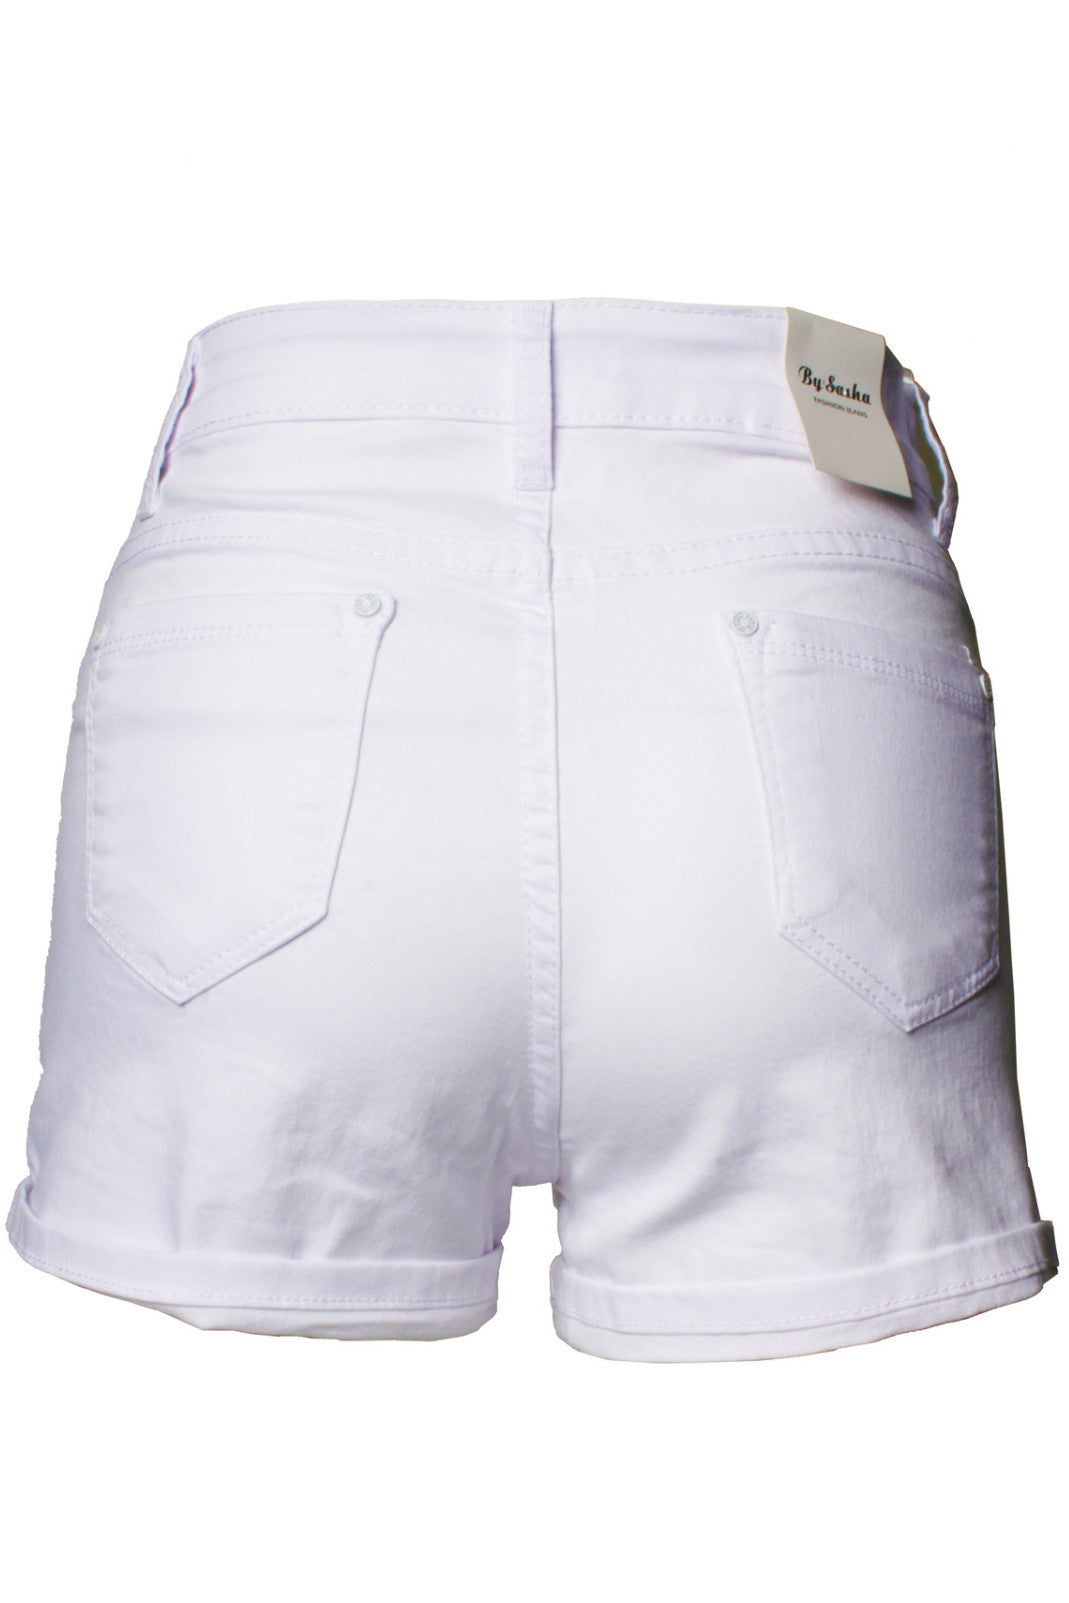 White 5 Pocket High Waist Mini Shorts